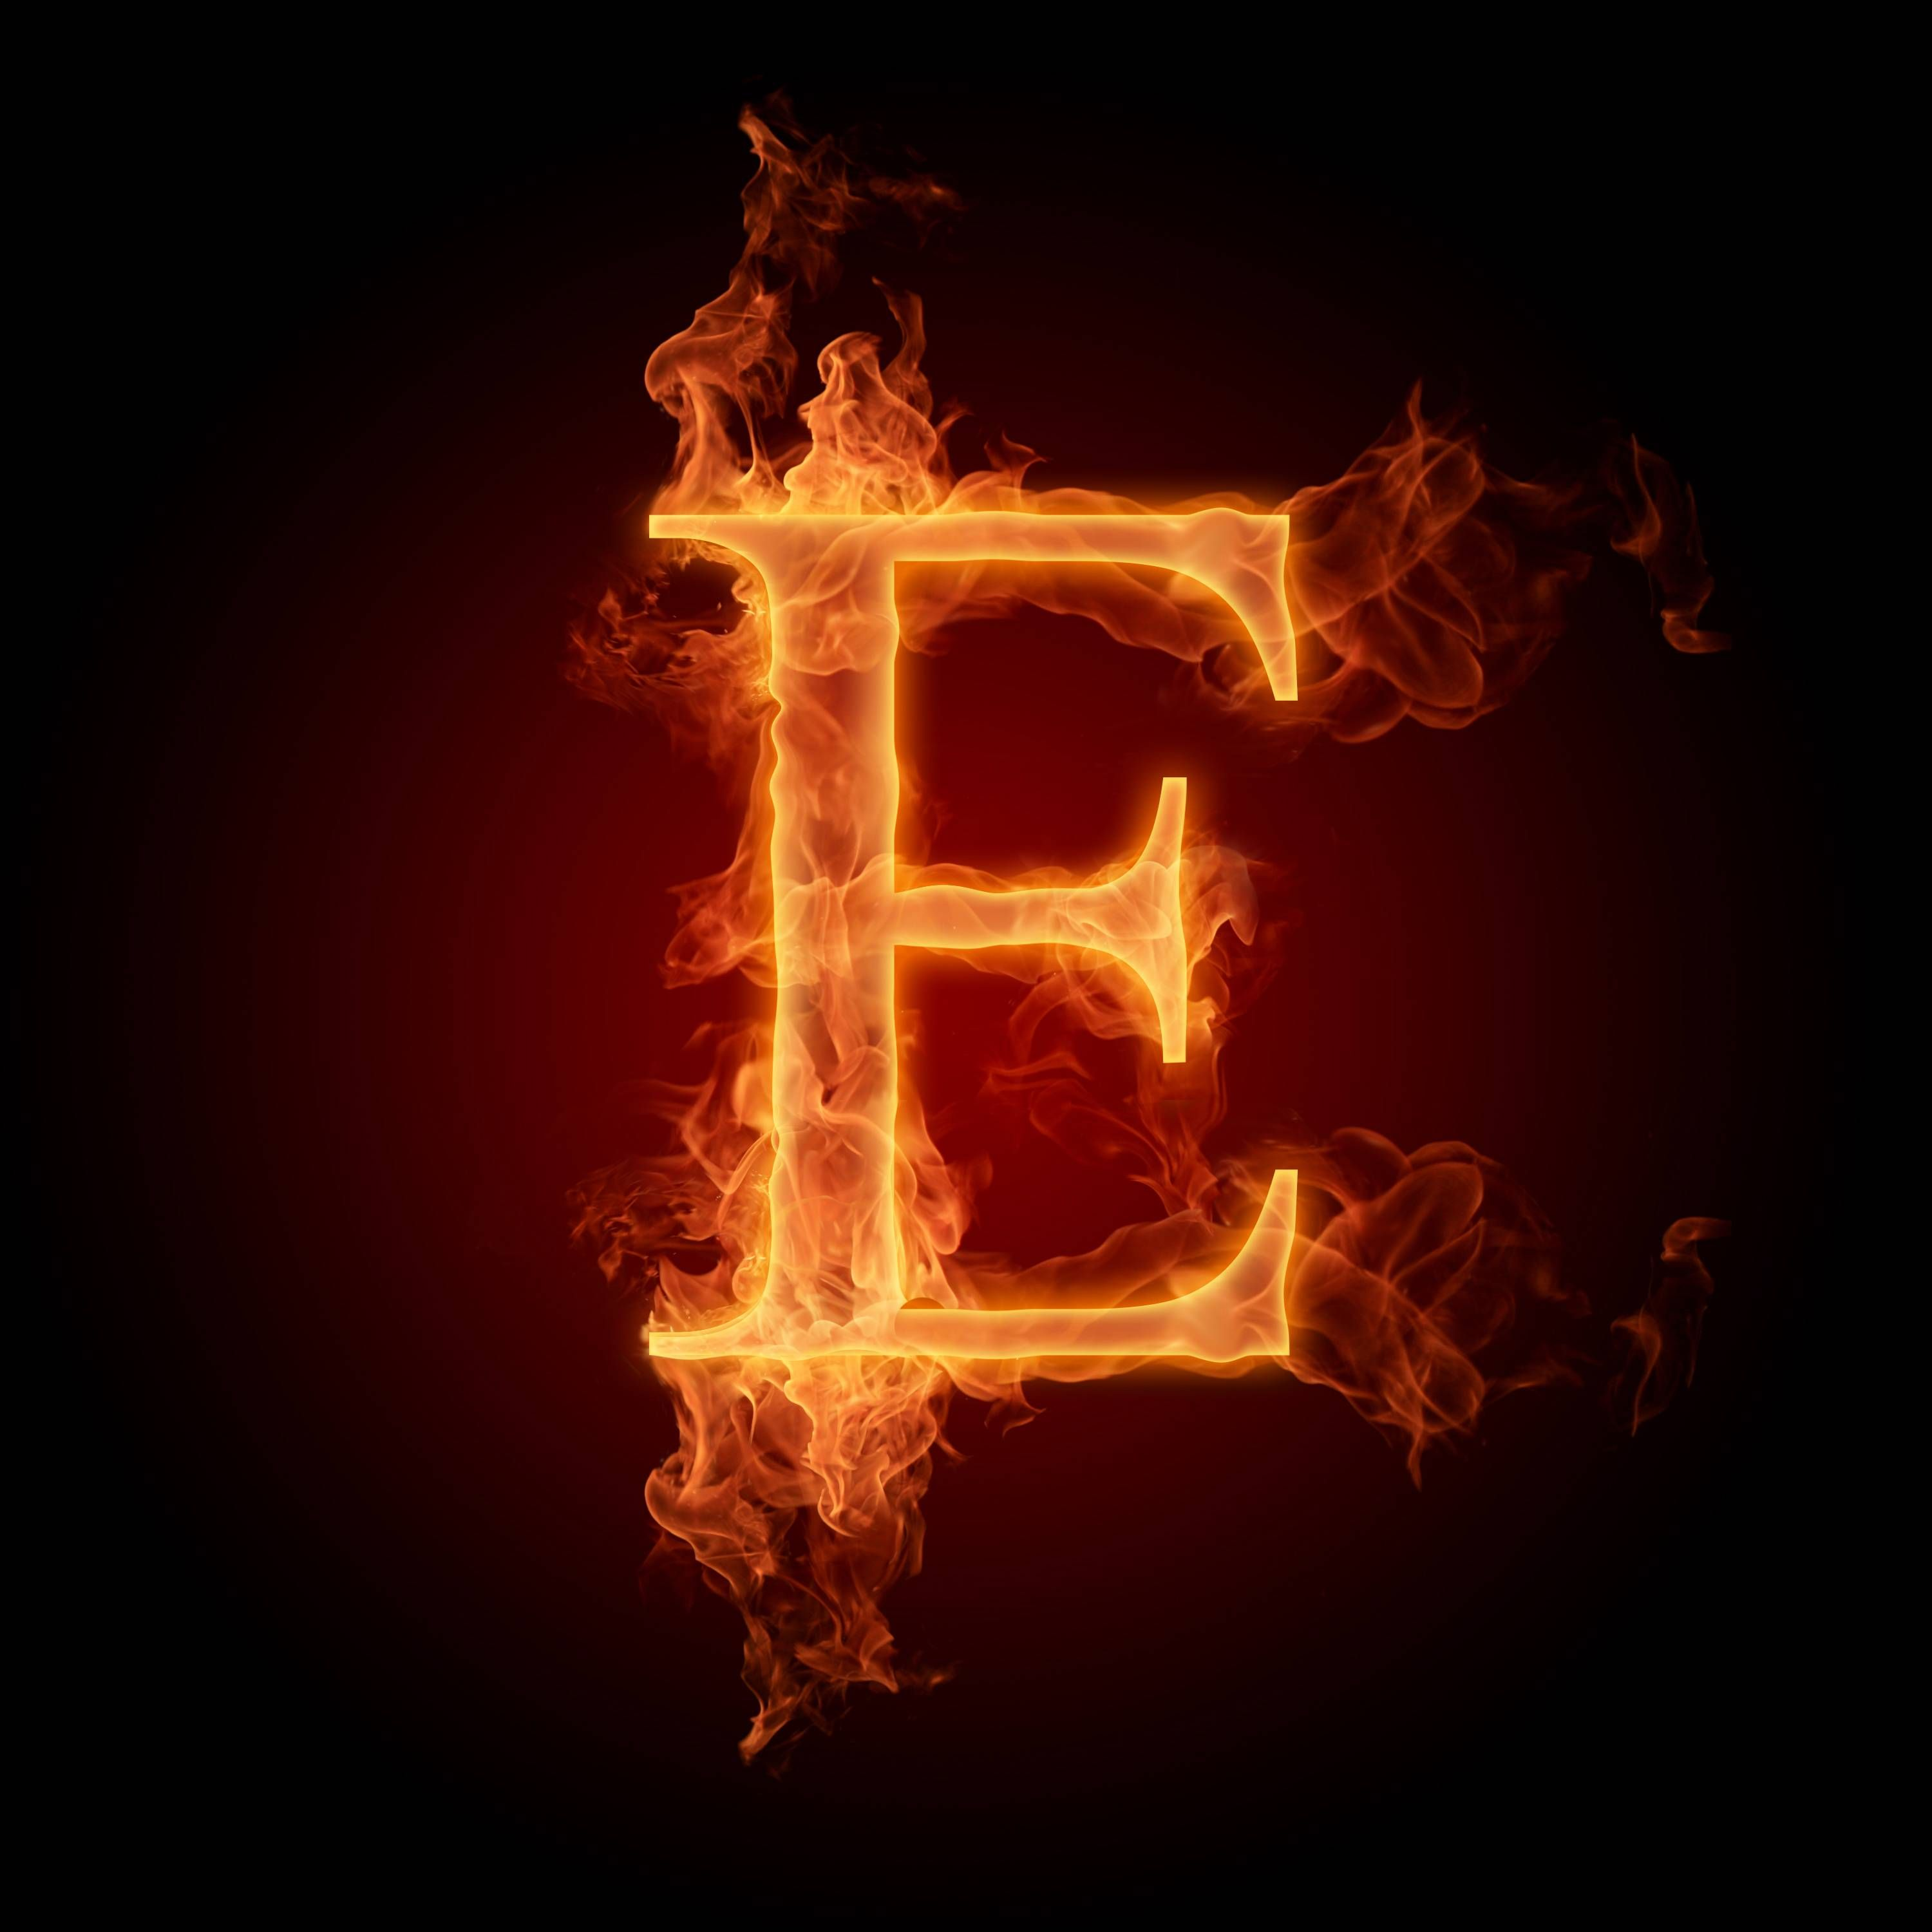 Burning Letters Wallpapers E 270x180 Burning Fire Letters/Alphabets A to Z Wallpapers | Shoes ...